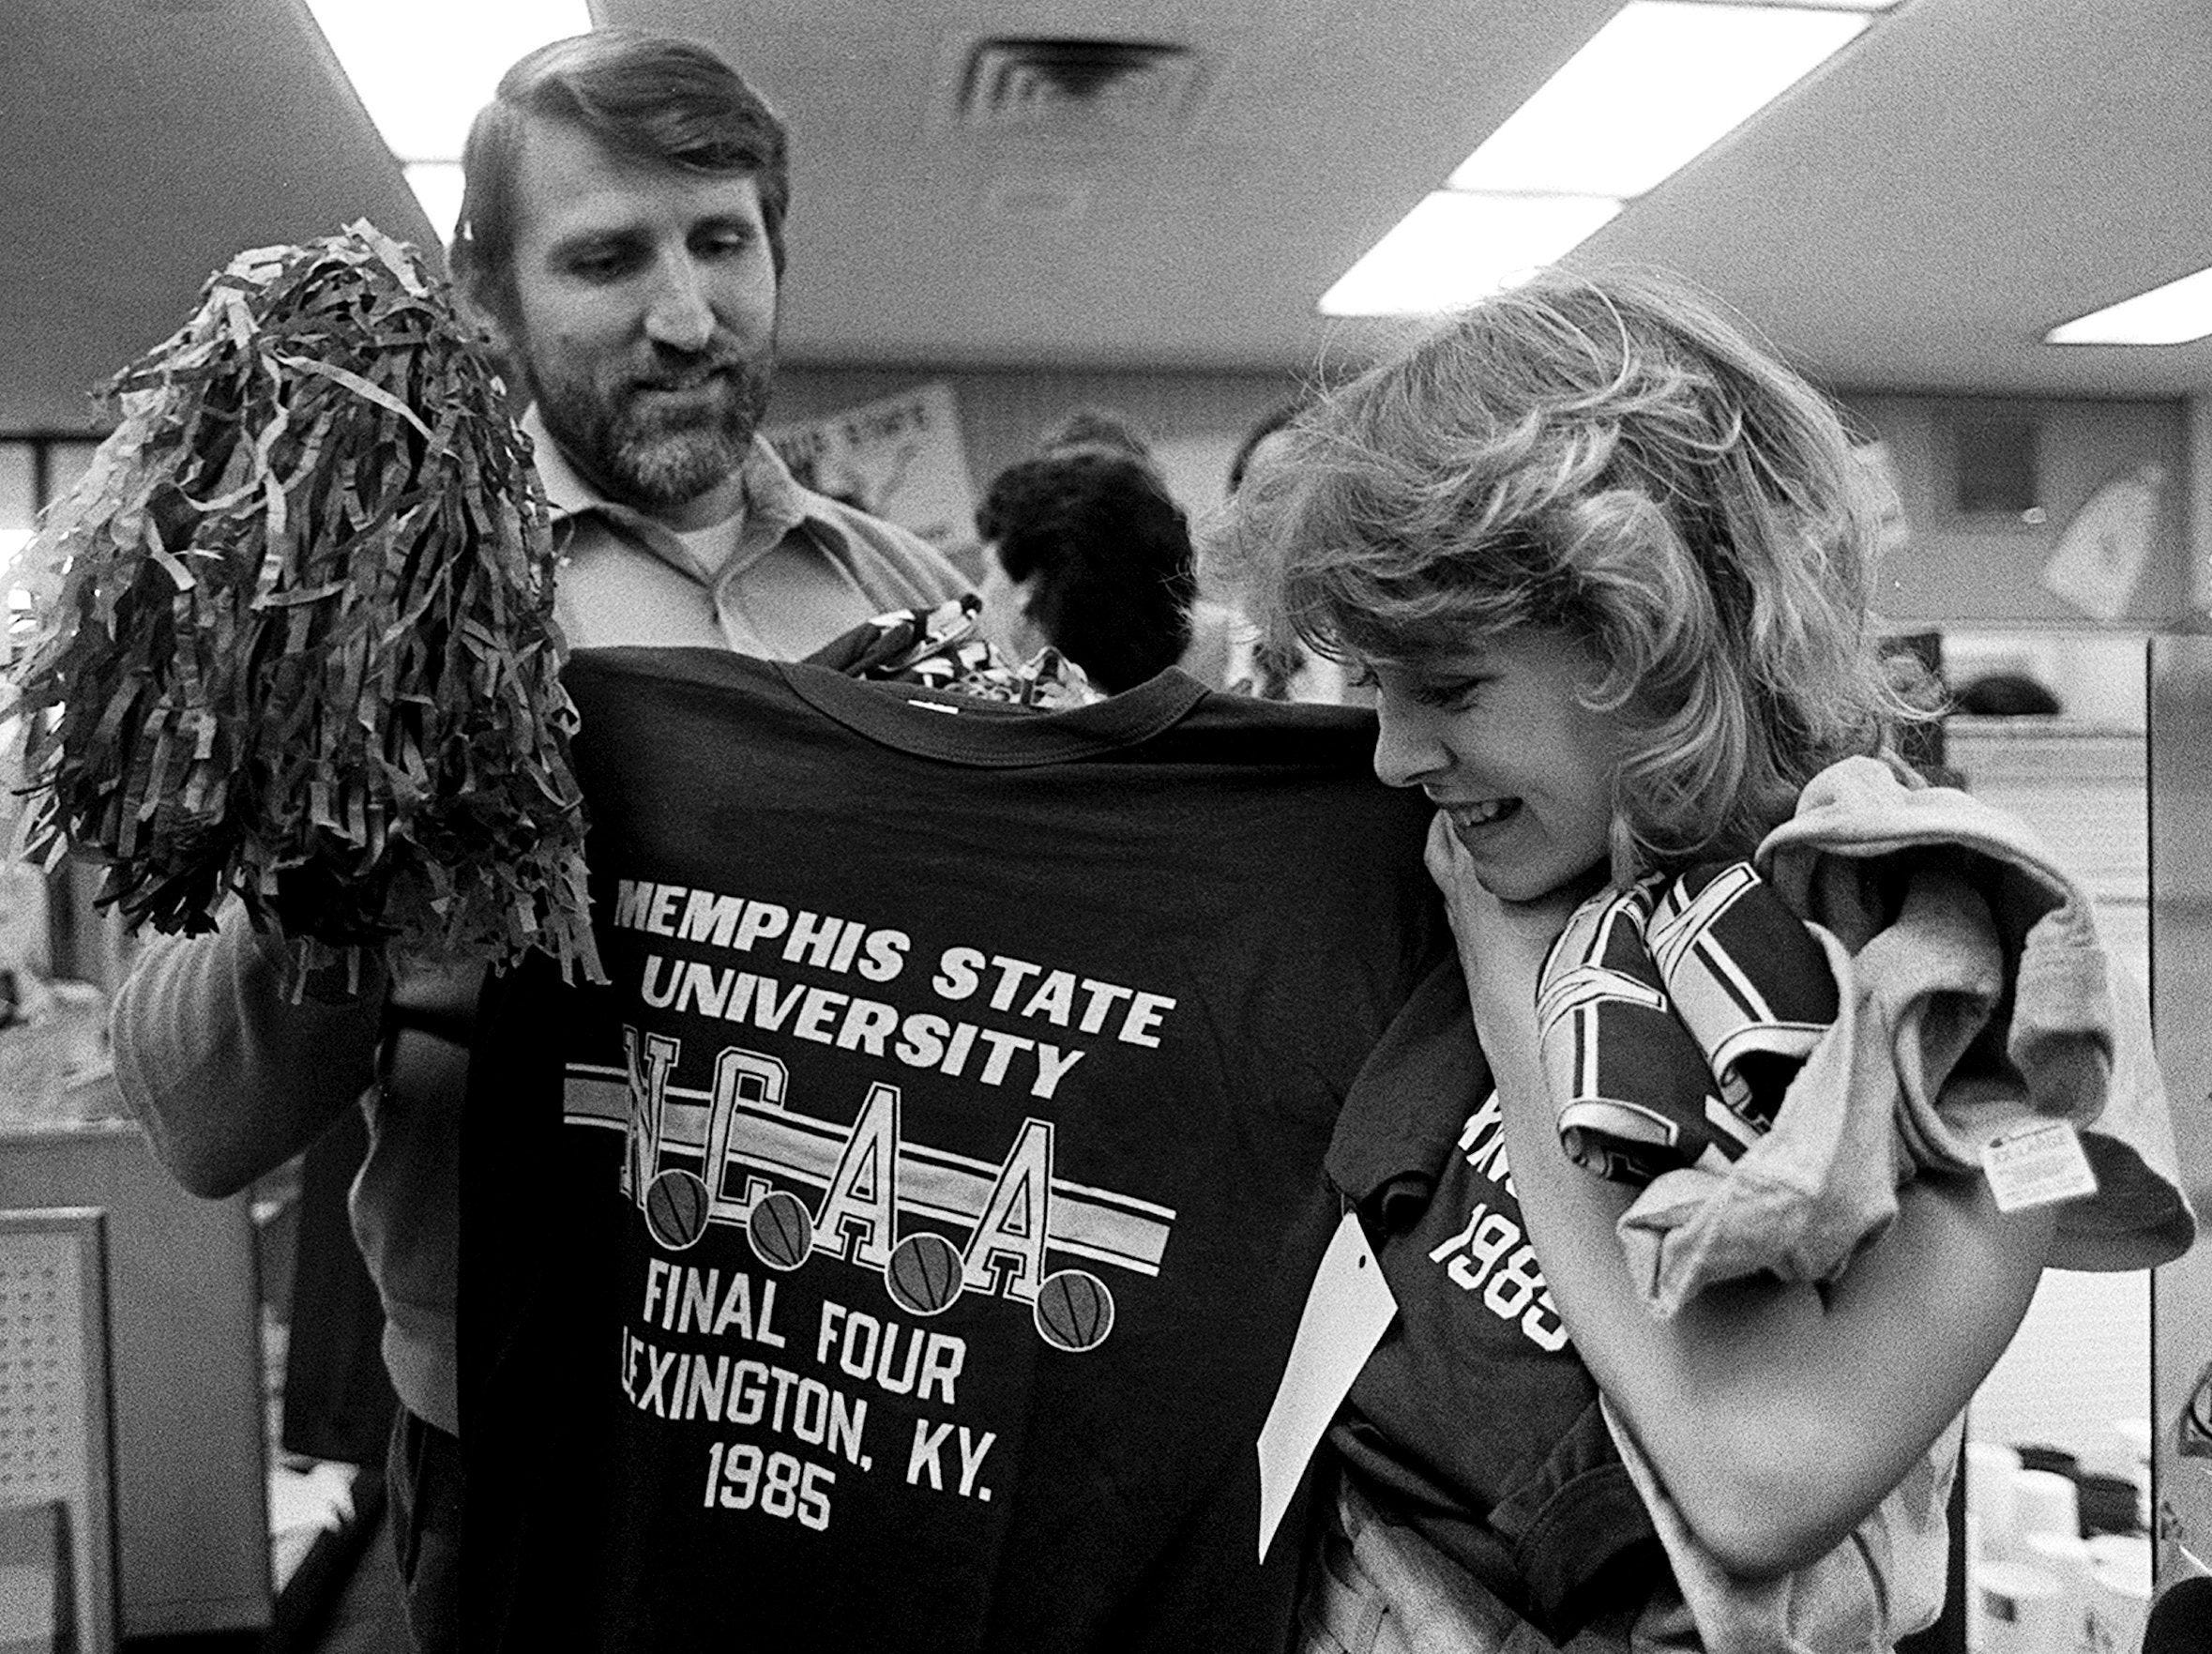 Jim Wessenauer and his daughter Dawn, 14, purchase Final Four T-shirts and pompons from MSU's bookstore on 26 Mar 1985 as the Tigers return to the Final Four.